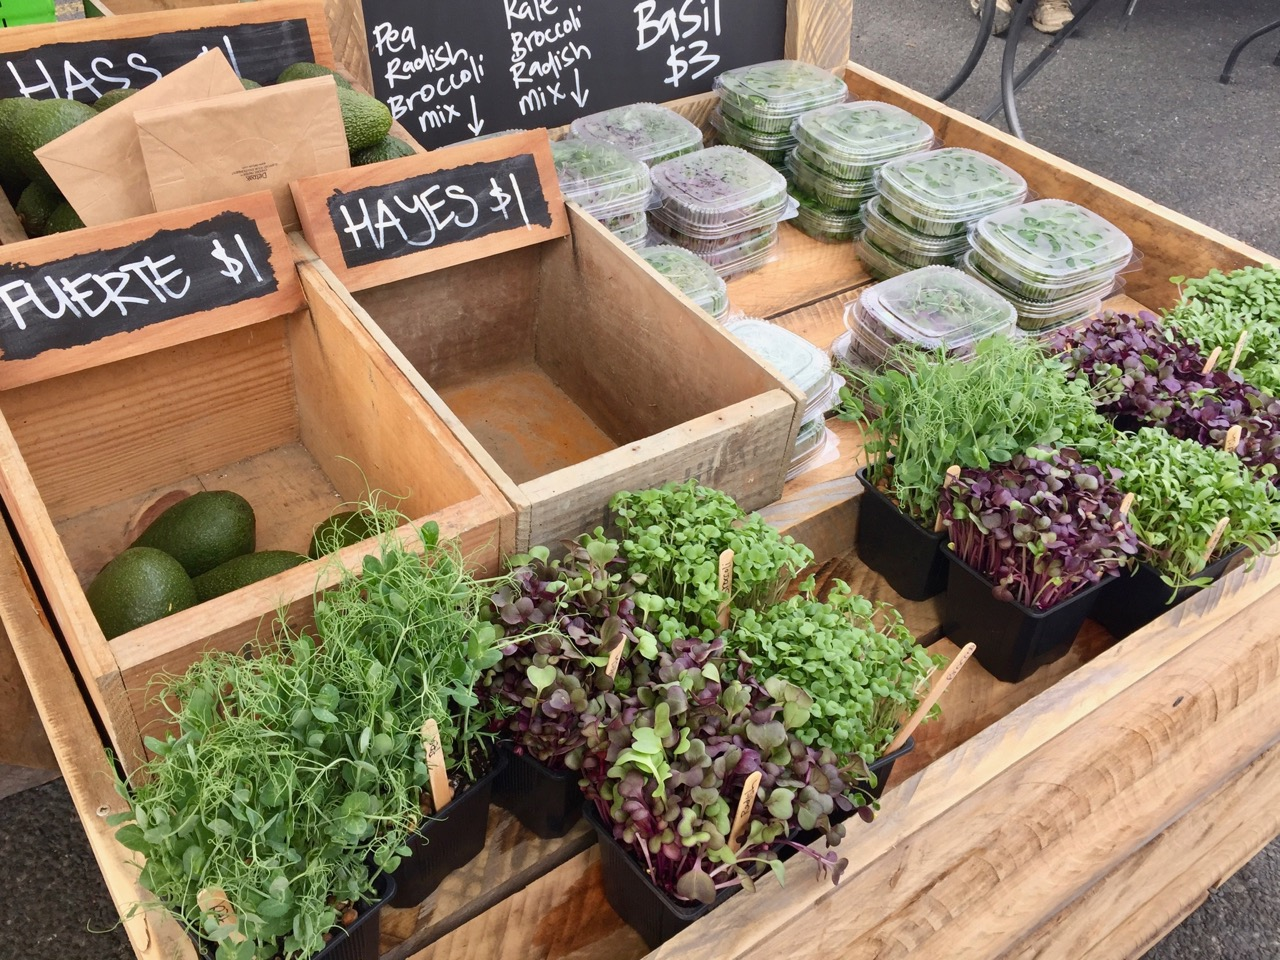 Gisborne farmers market and food trail